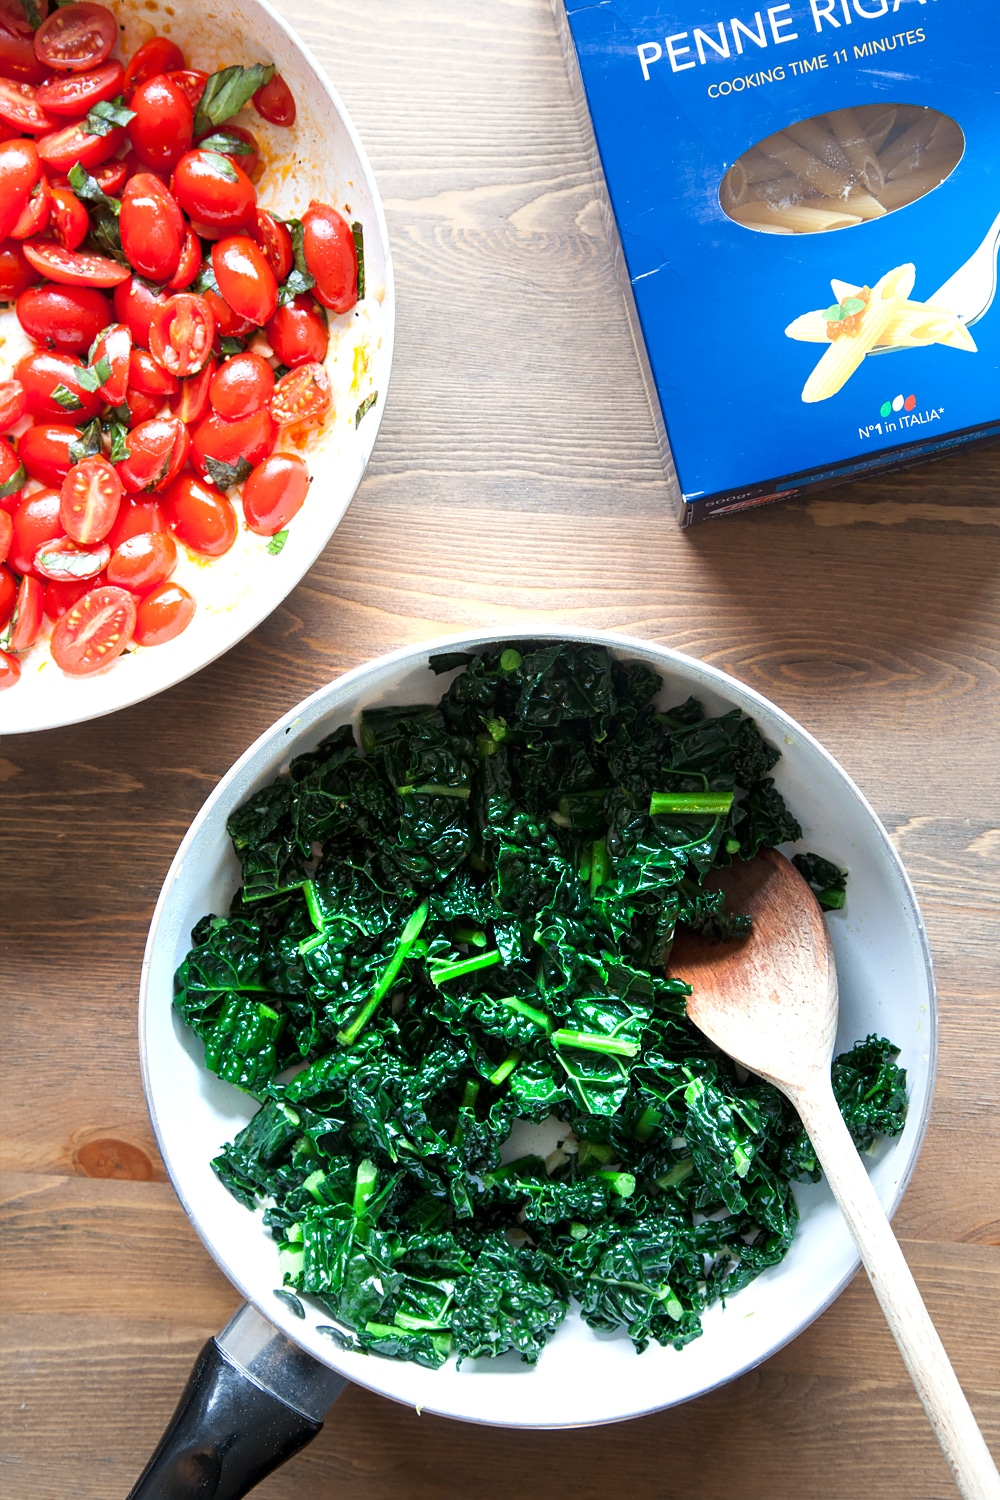 Seasoned wilted cavalo nero (black kale) in a frying pan